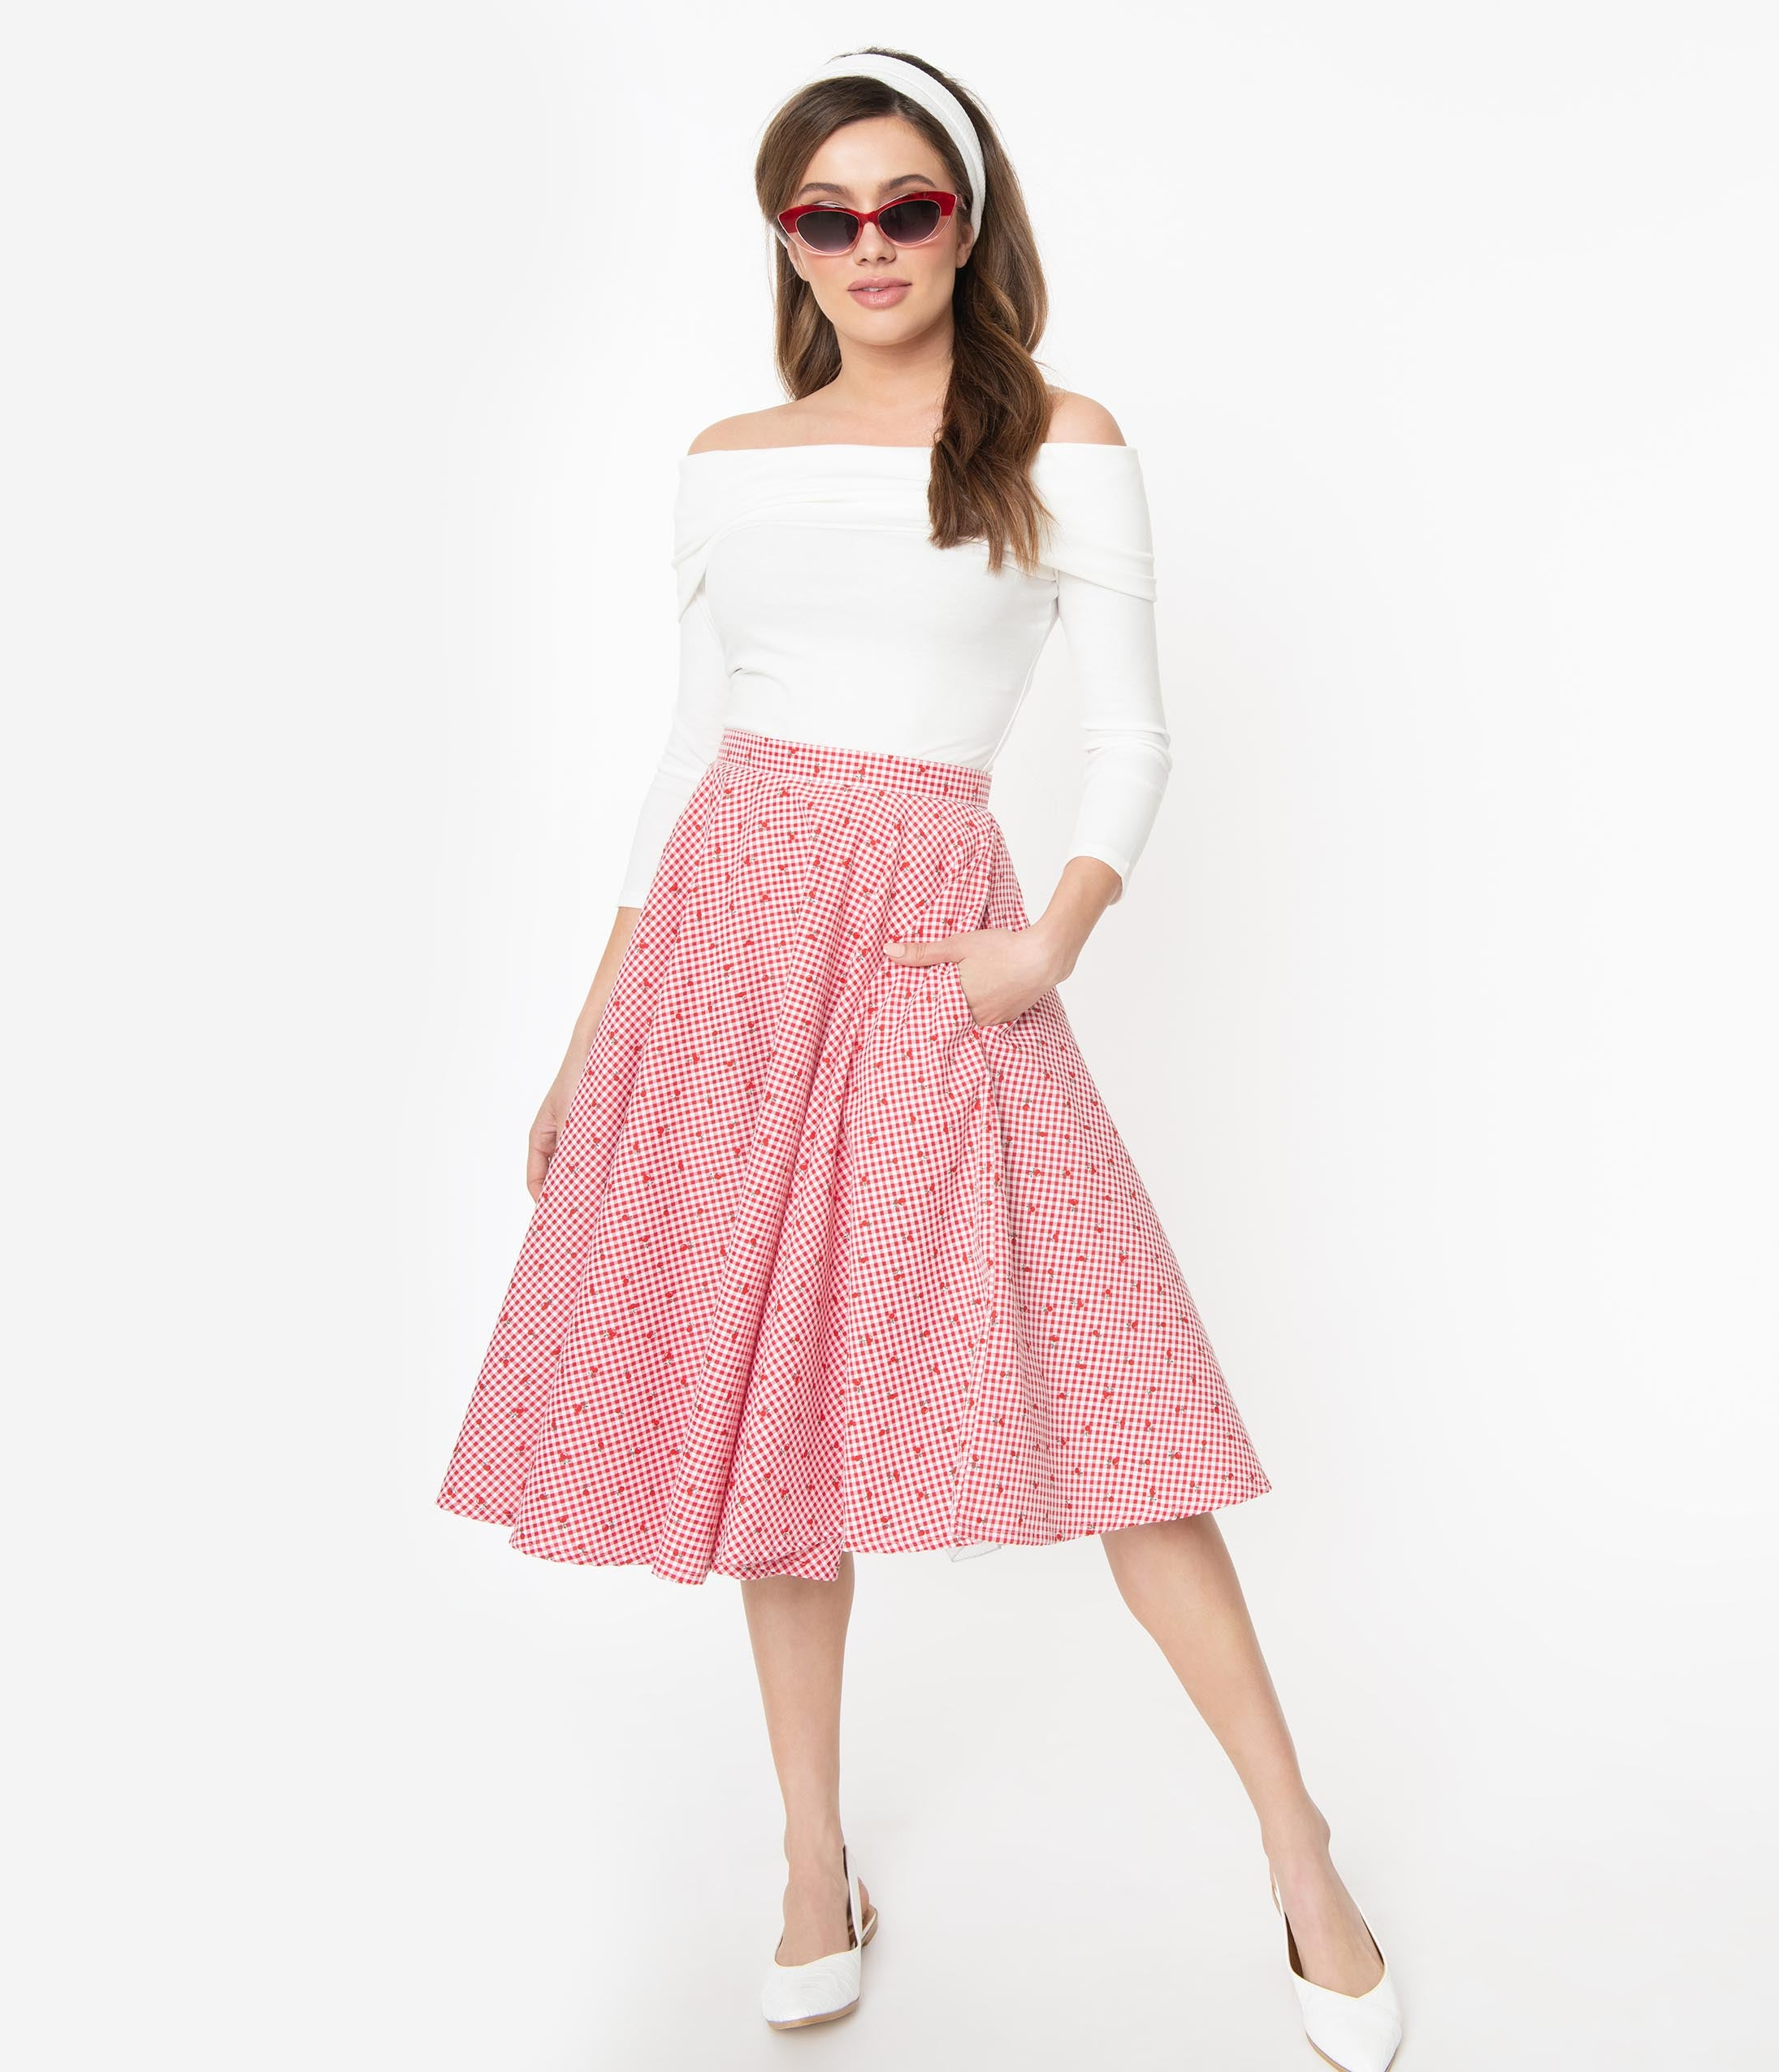 Retro Skirts | Vintage, Pencil, Circle, & Plus Sizes 1950S Red  White Gingham Cherry Print Swing Skirt $58.00 AT vintagedancer.com